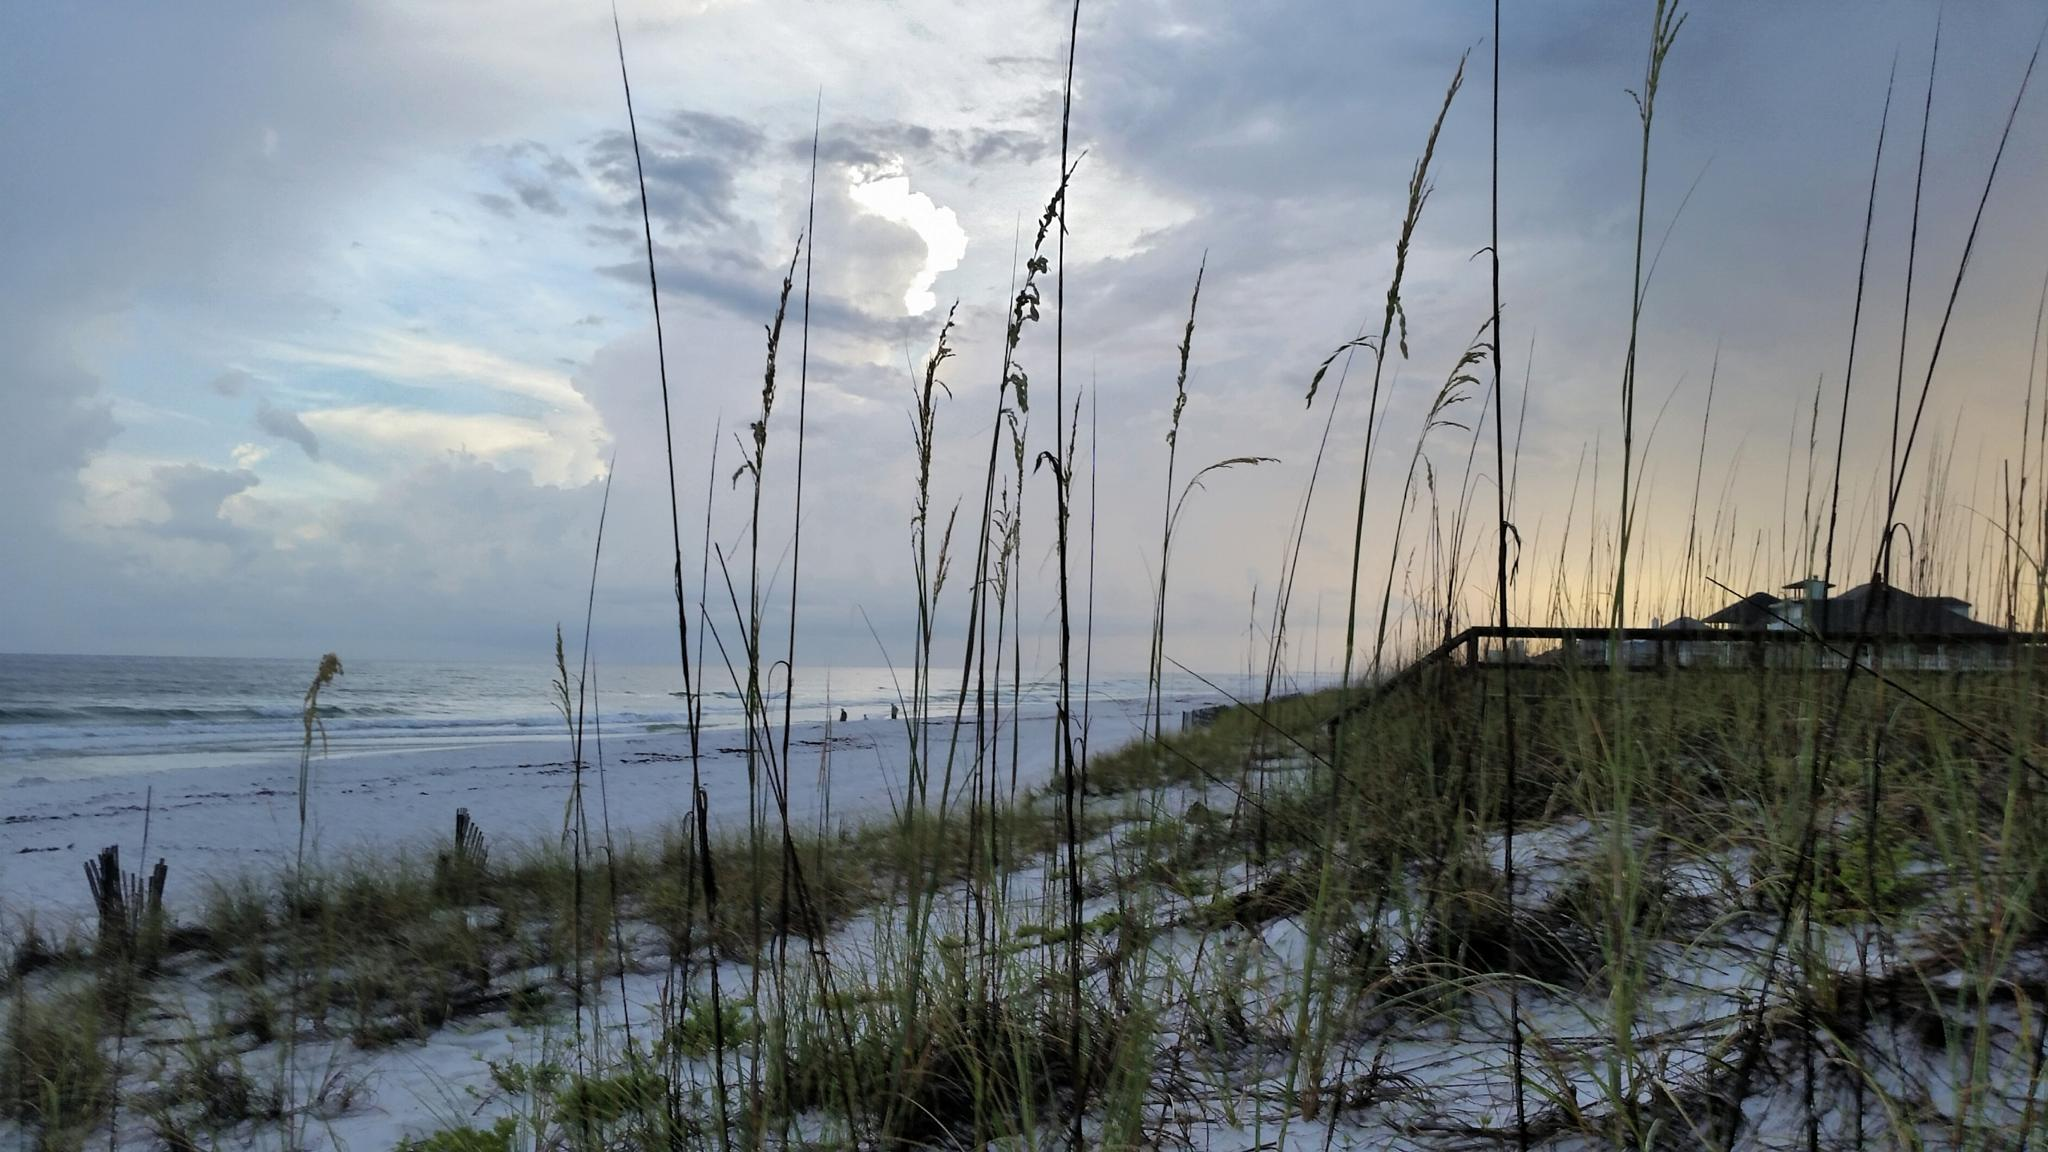 Beauty of the beach  by misty hill